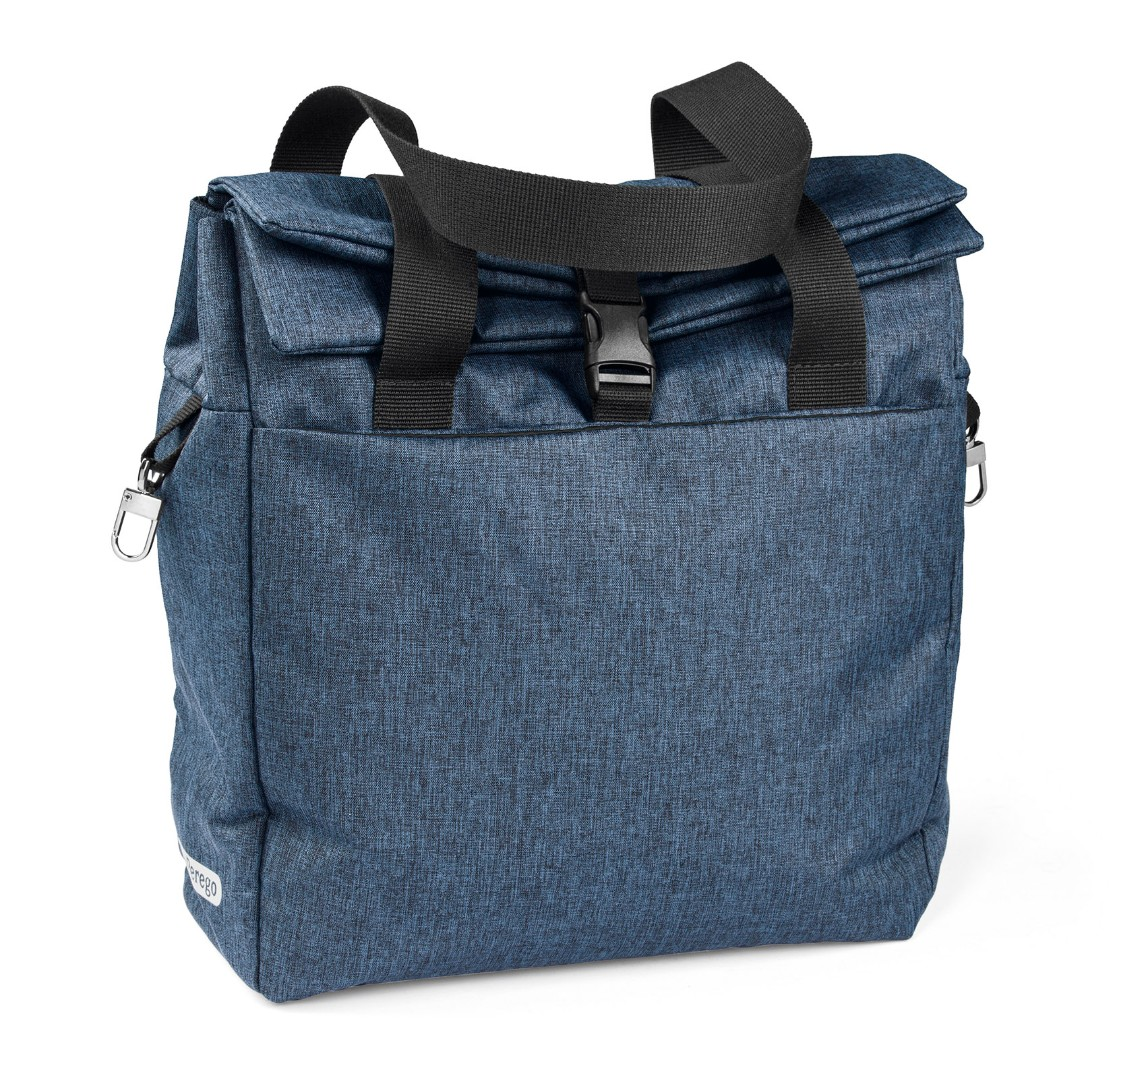 Сумка Peg-Perego Smart Bag Indigo